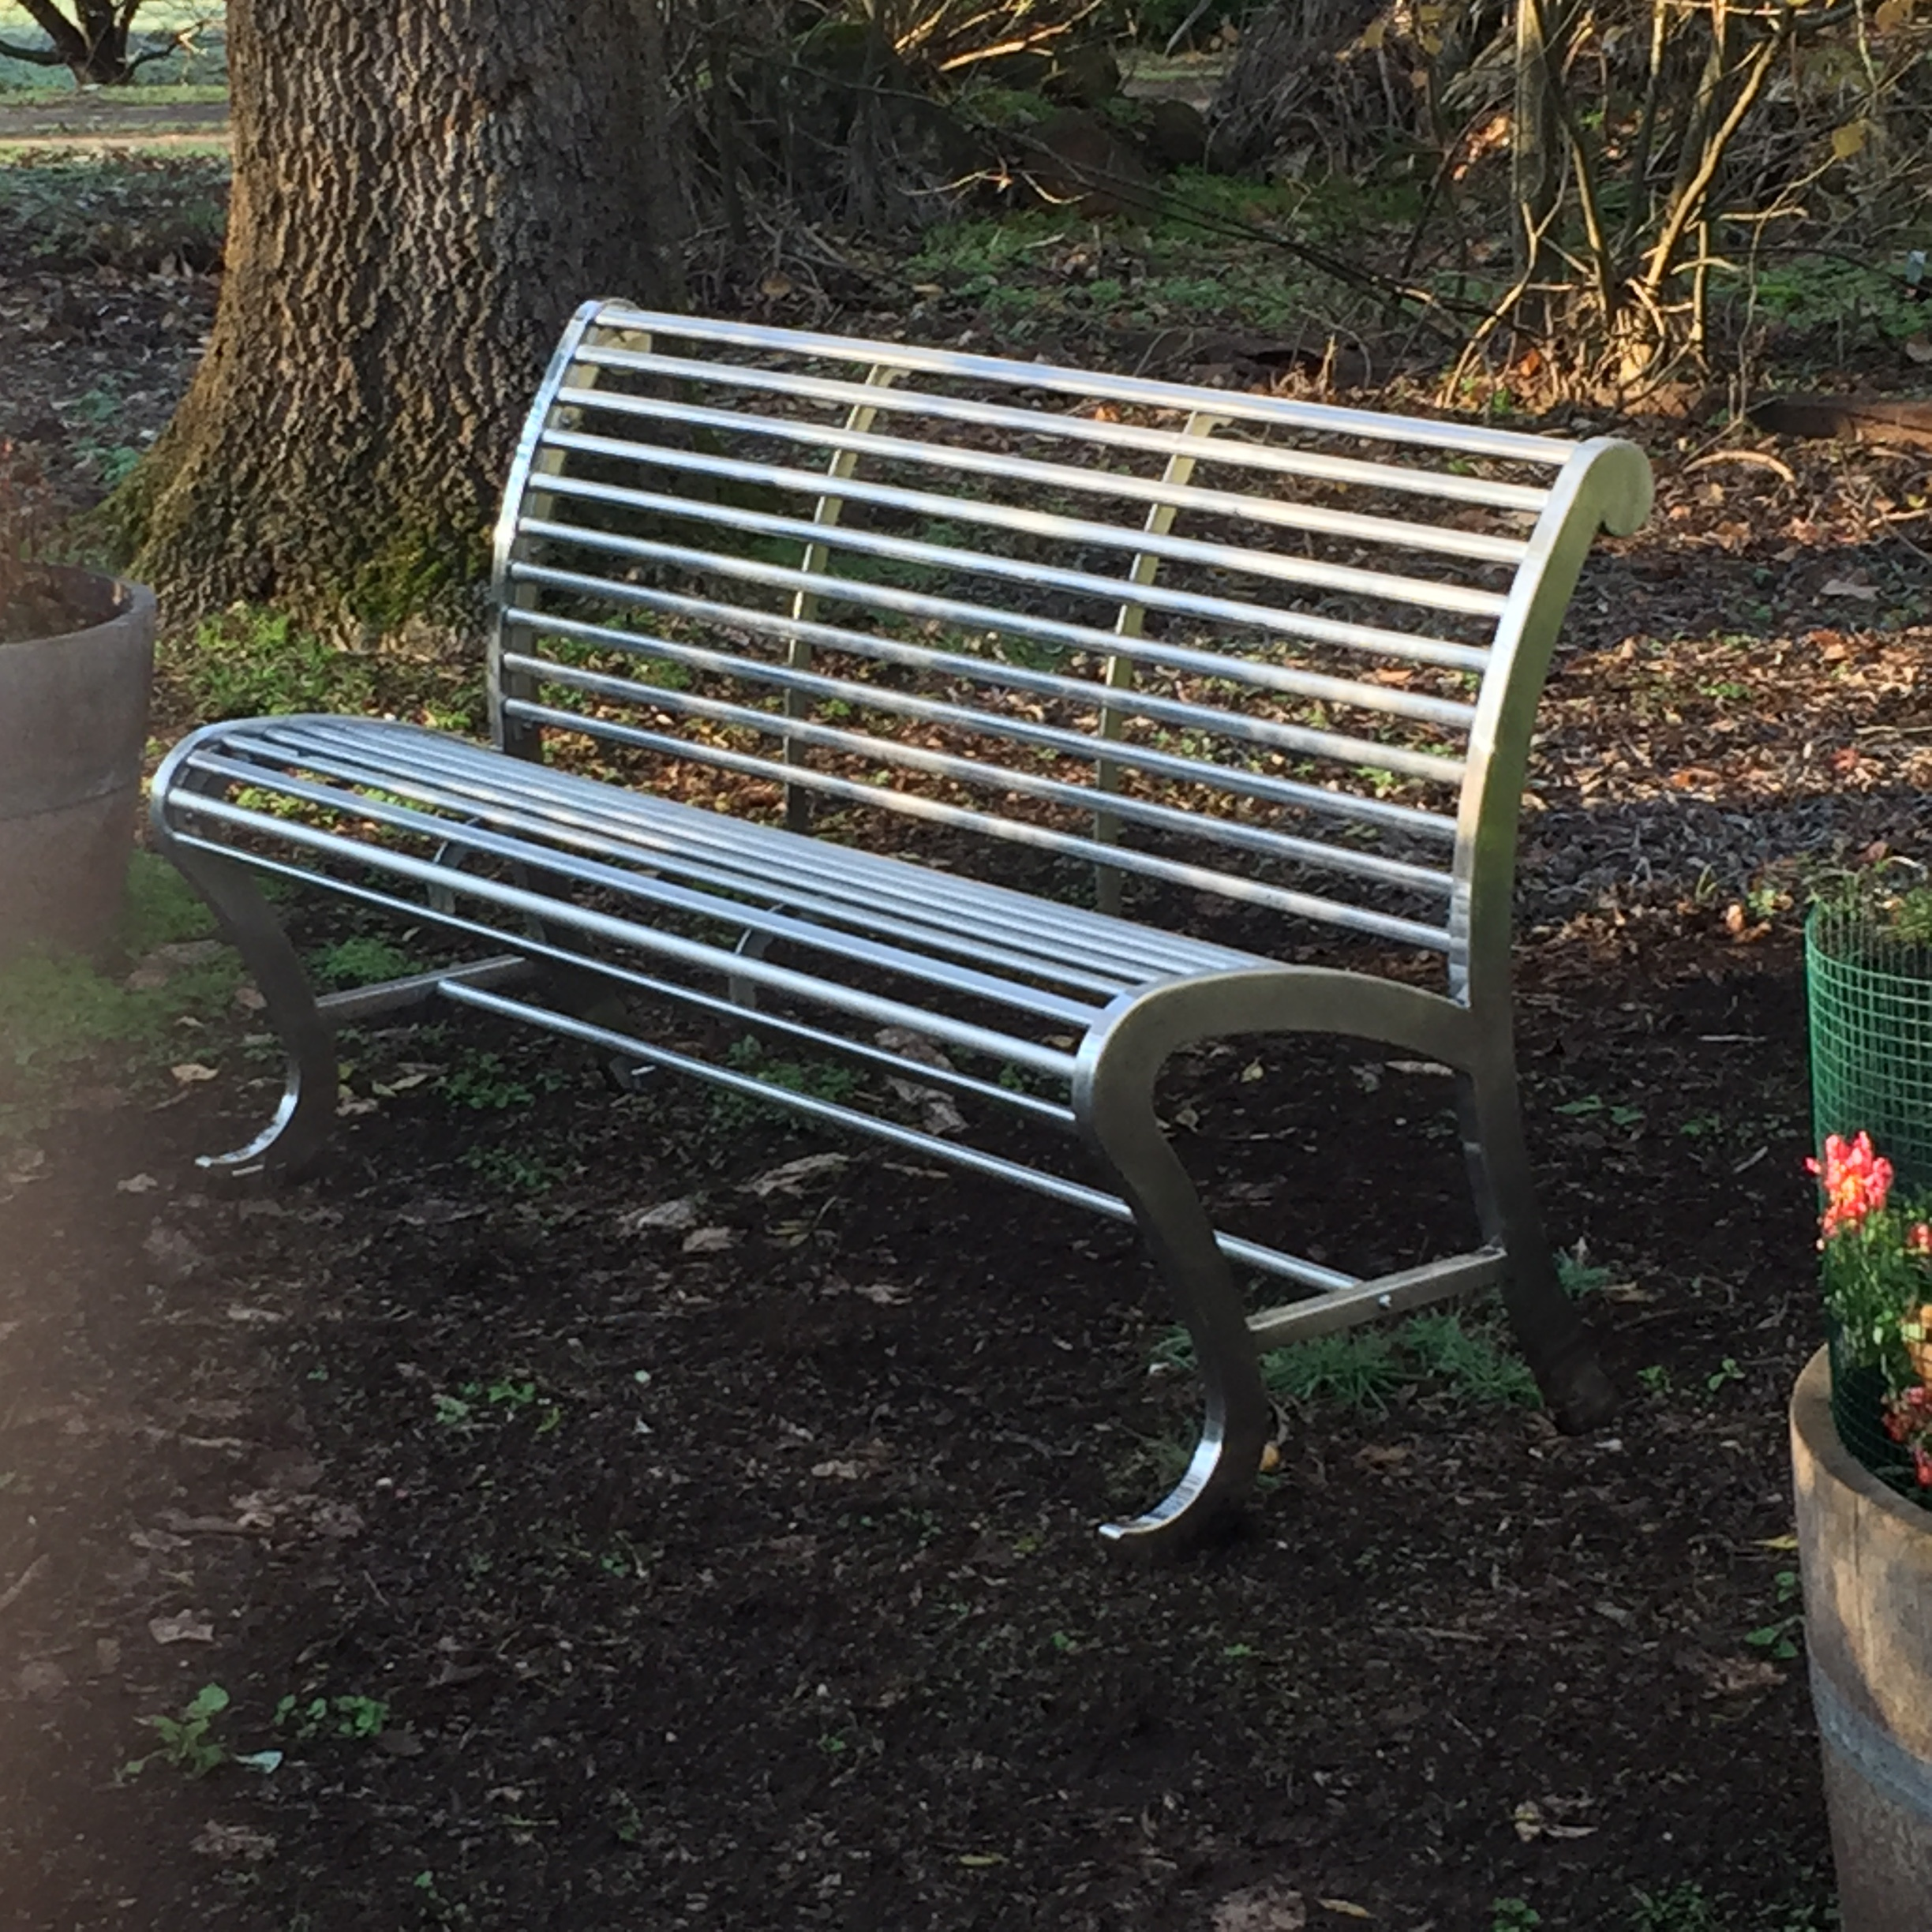 Stainless Steel MARINE GRADE 316 Park Benches 1550mm L x 651 mm W x 893 mm H